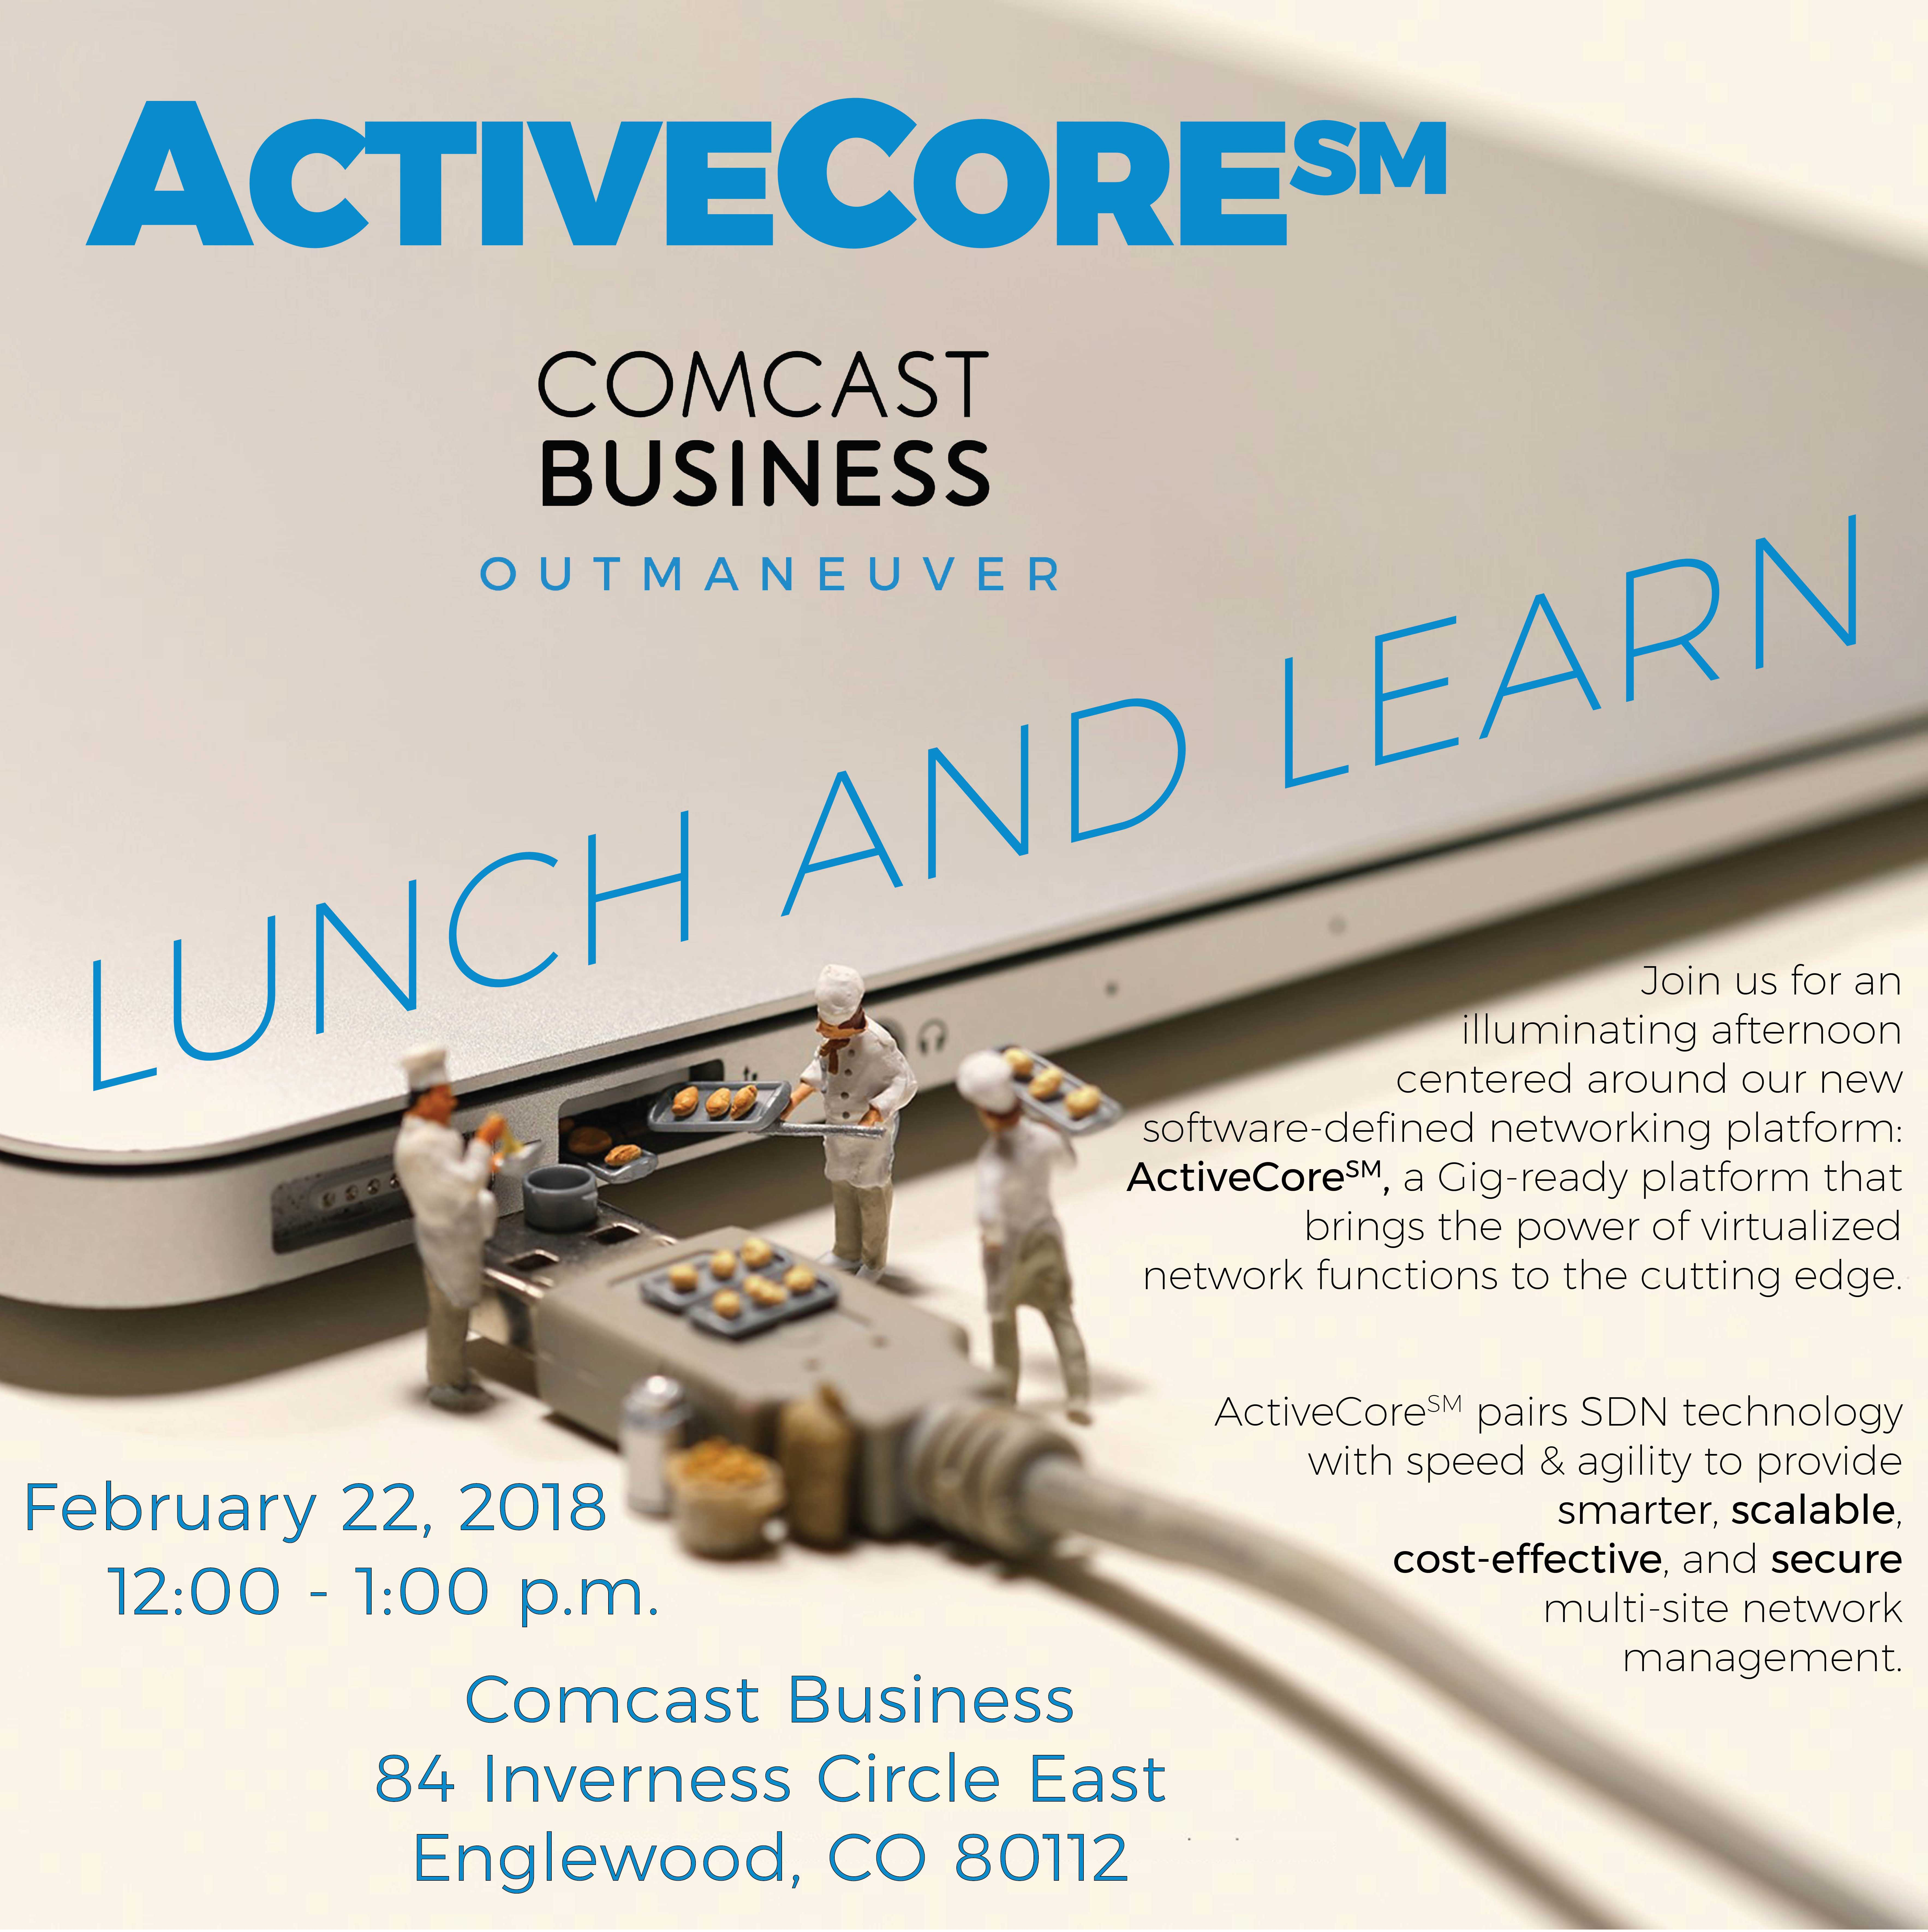 Comcast ActiveCore SDN Lunch & Learn